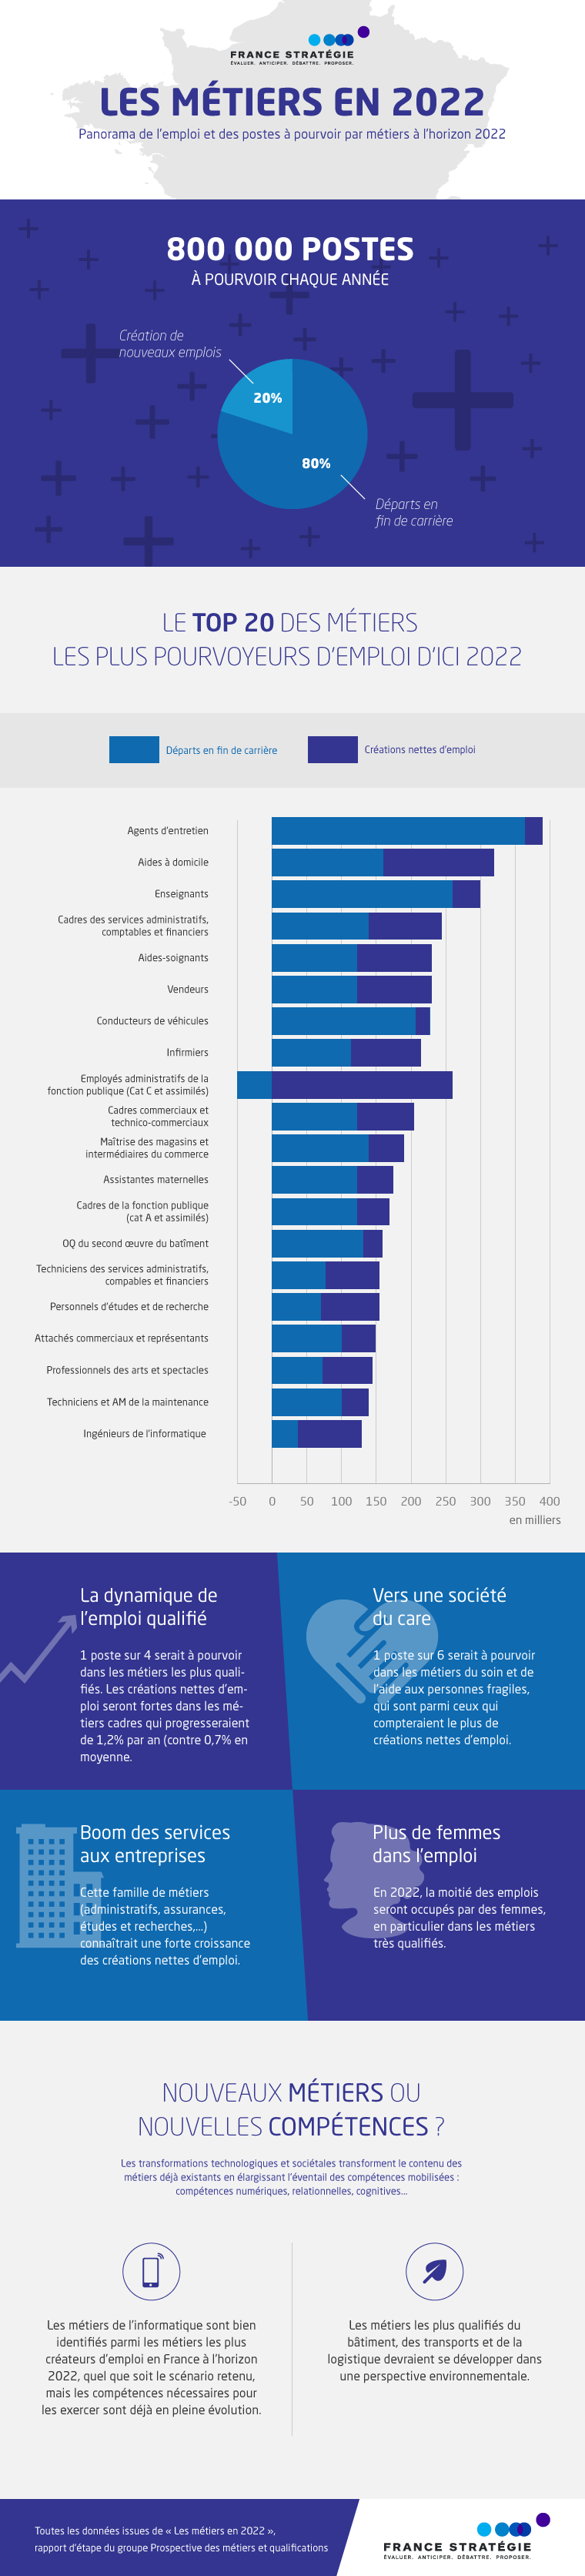 metiers_2022_infographie_france_strategie